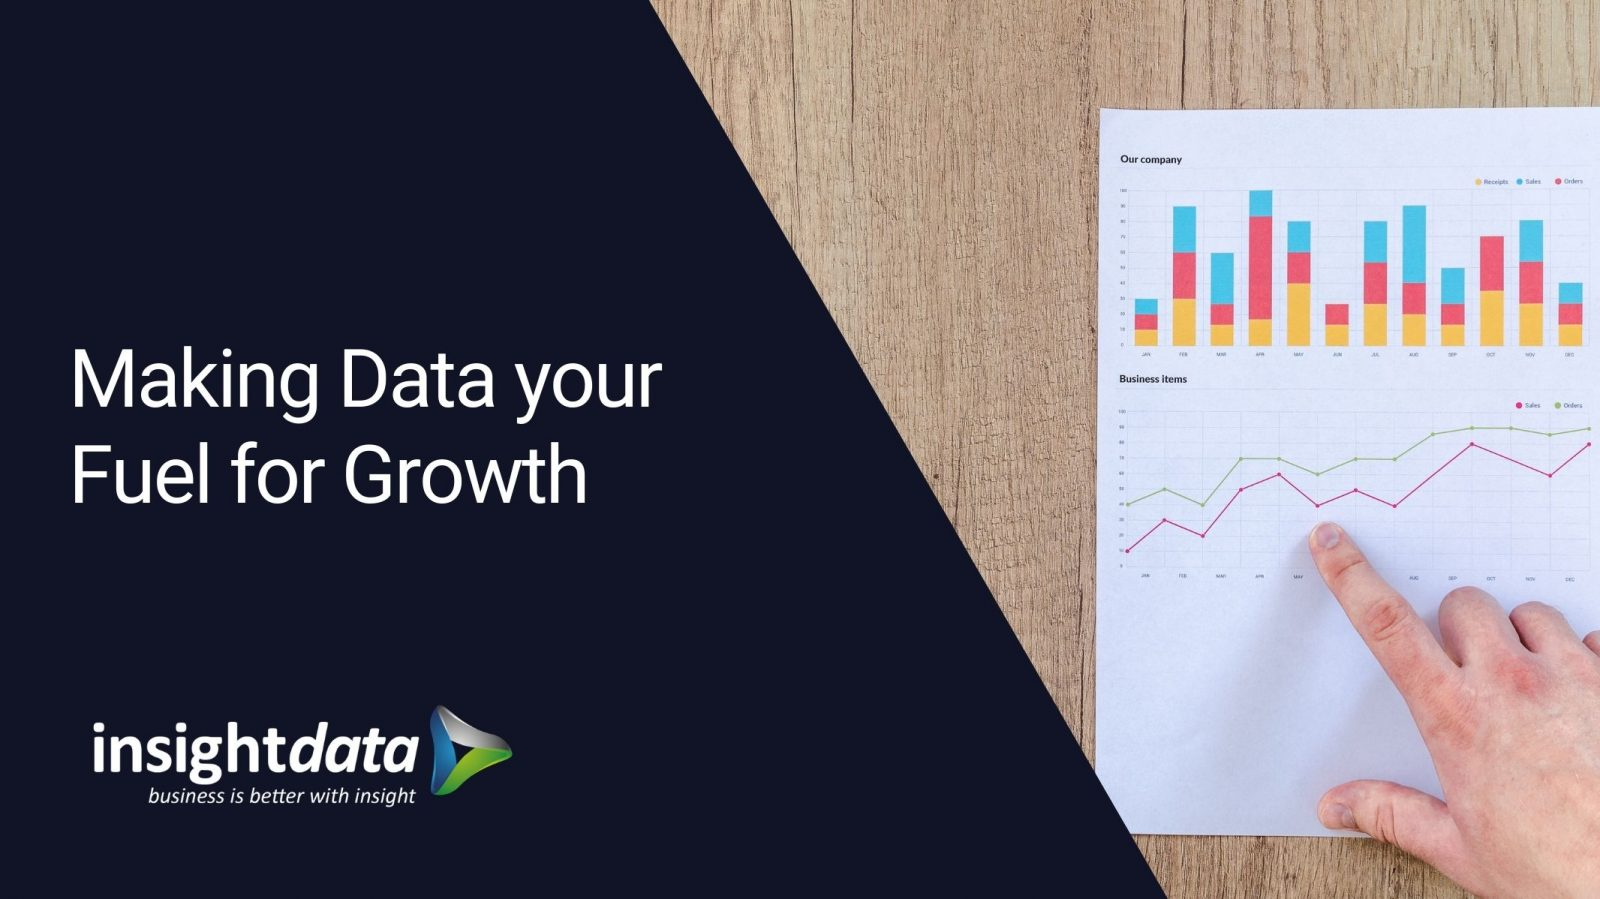 Insight Data Business Growth